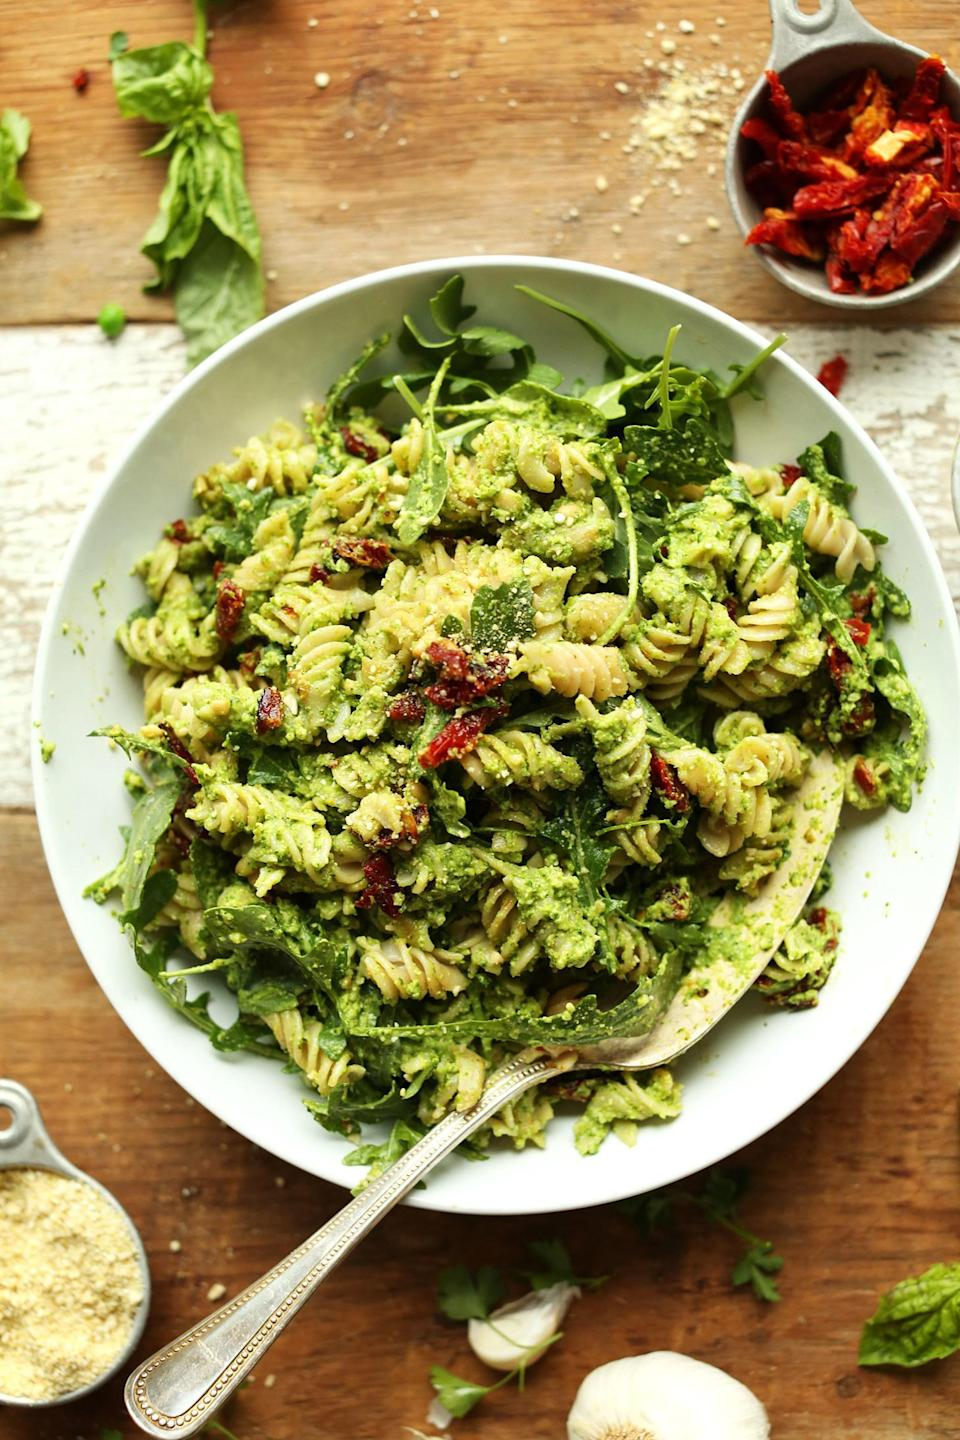 Plate of freshly made pea pesto pasta with bits of sliced sundried tomatoes.